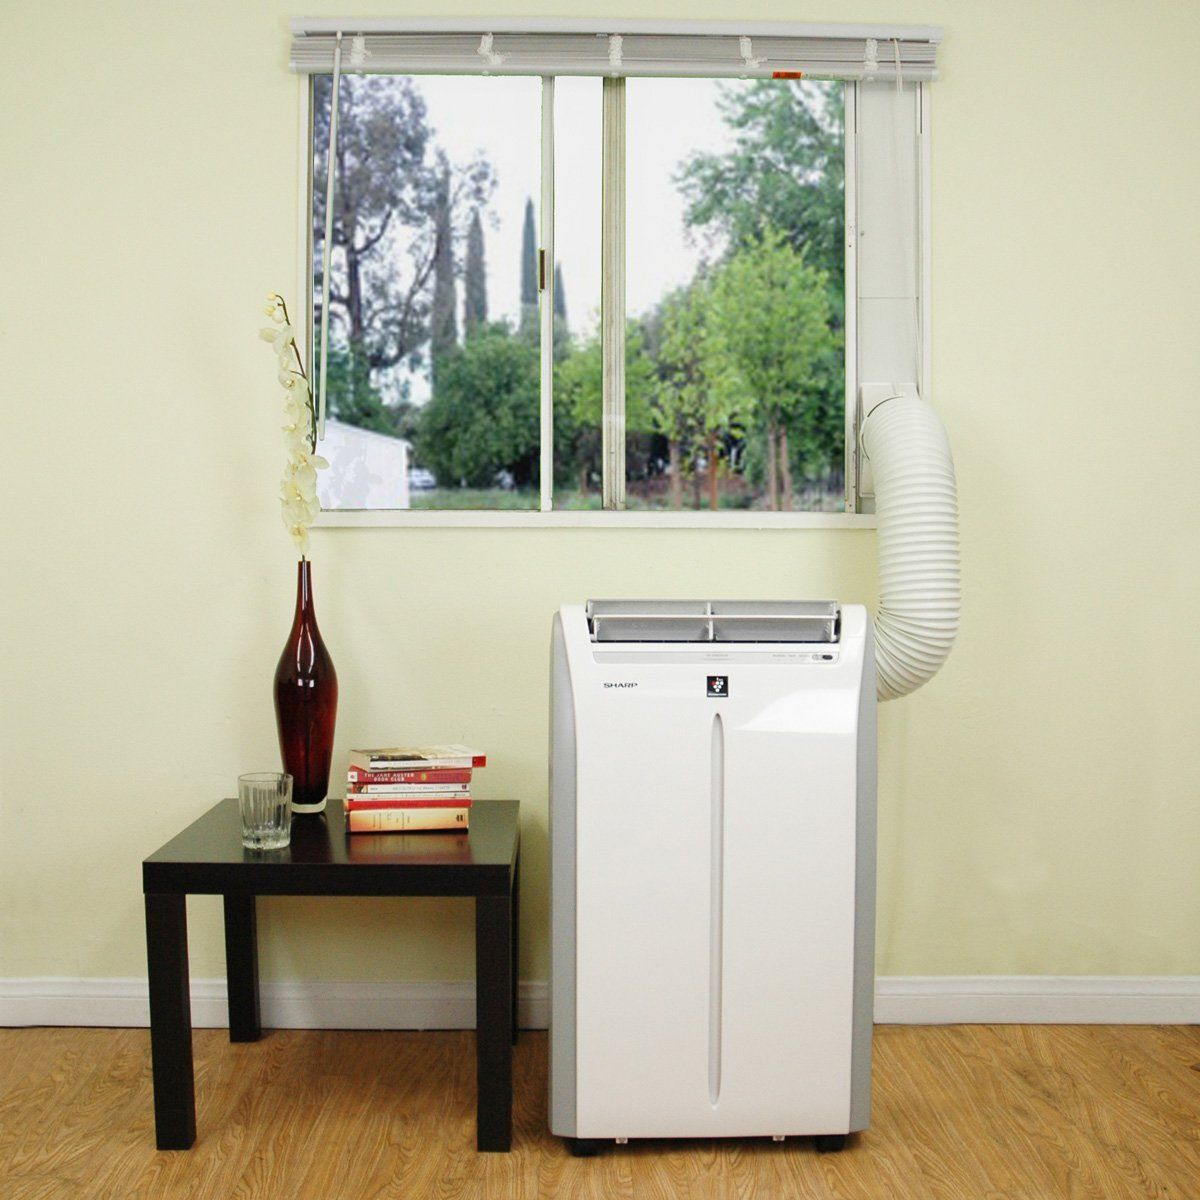 Buy The Best Portable Air Conditioner With Sliding Glass Door Kits